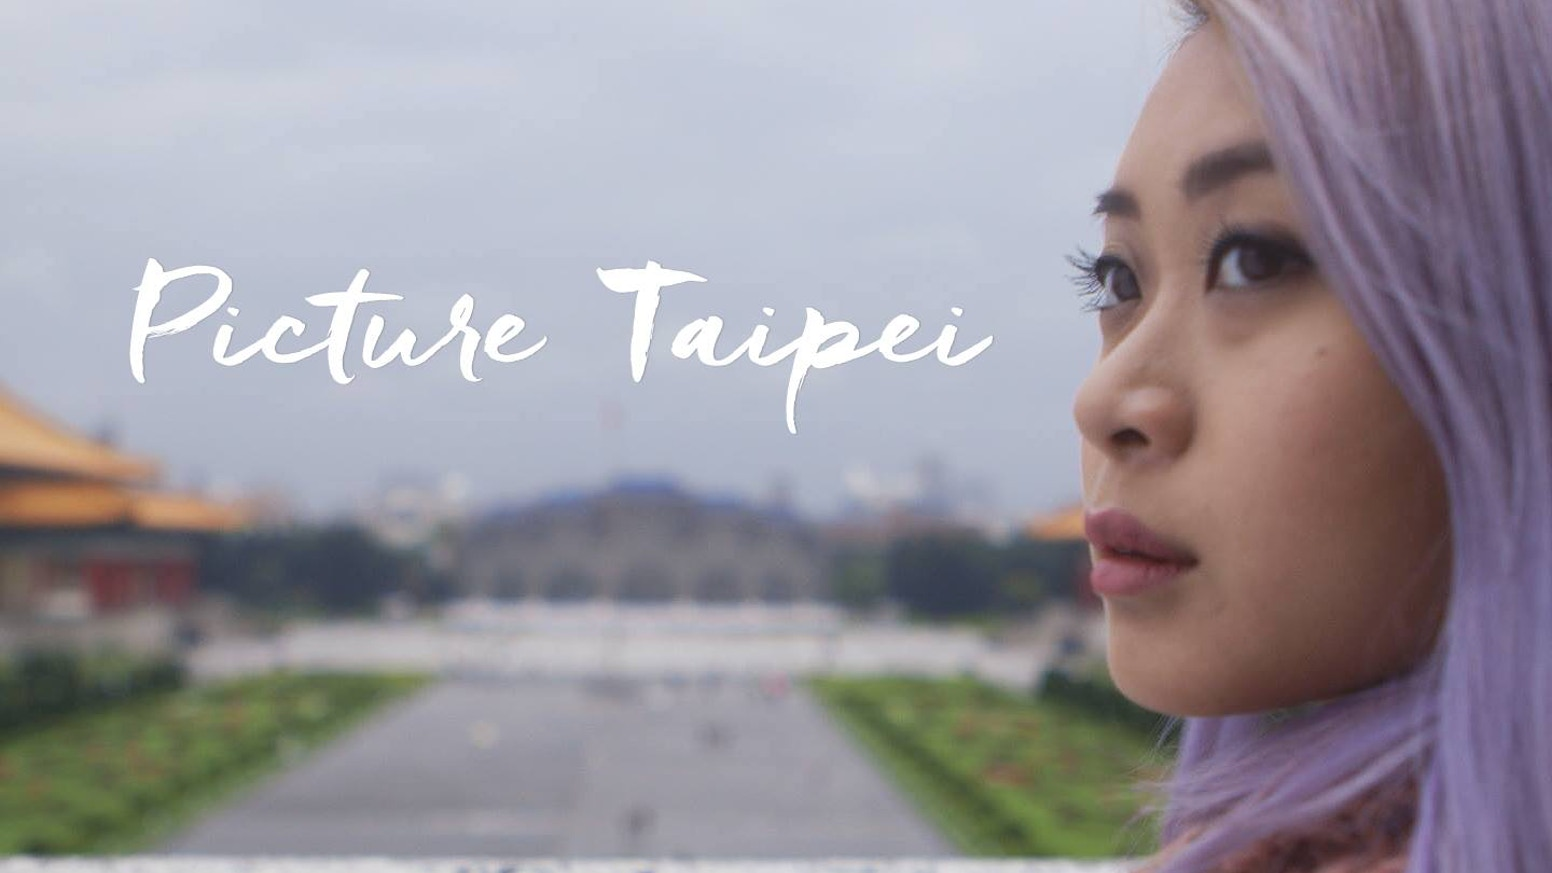 Picture Taipei is a short film about Aimee, an L.A. native who travels to Taipei, where the people she encounters change her life.